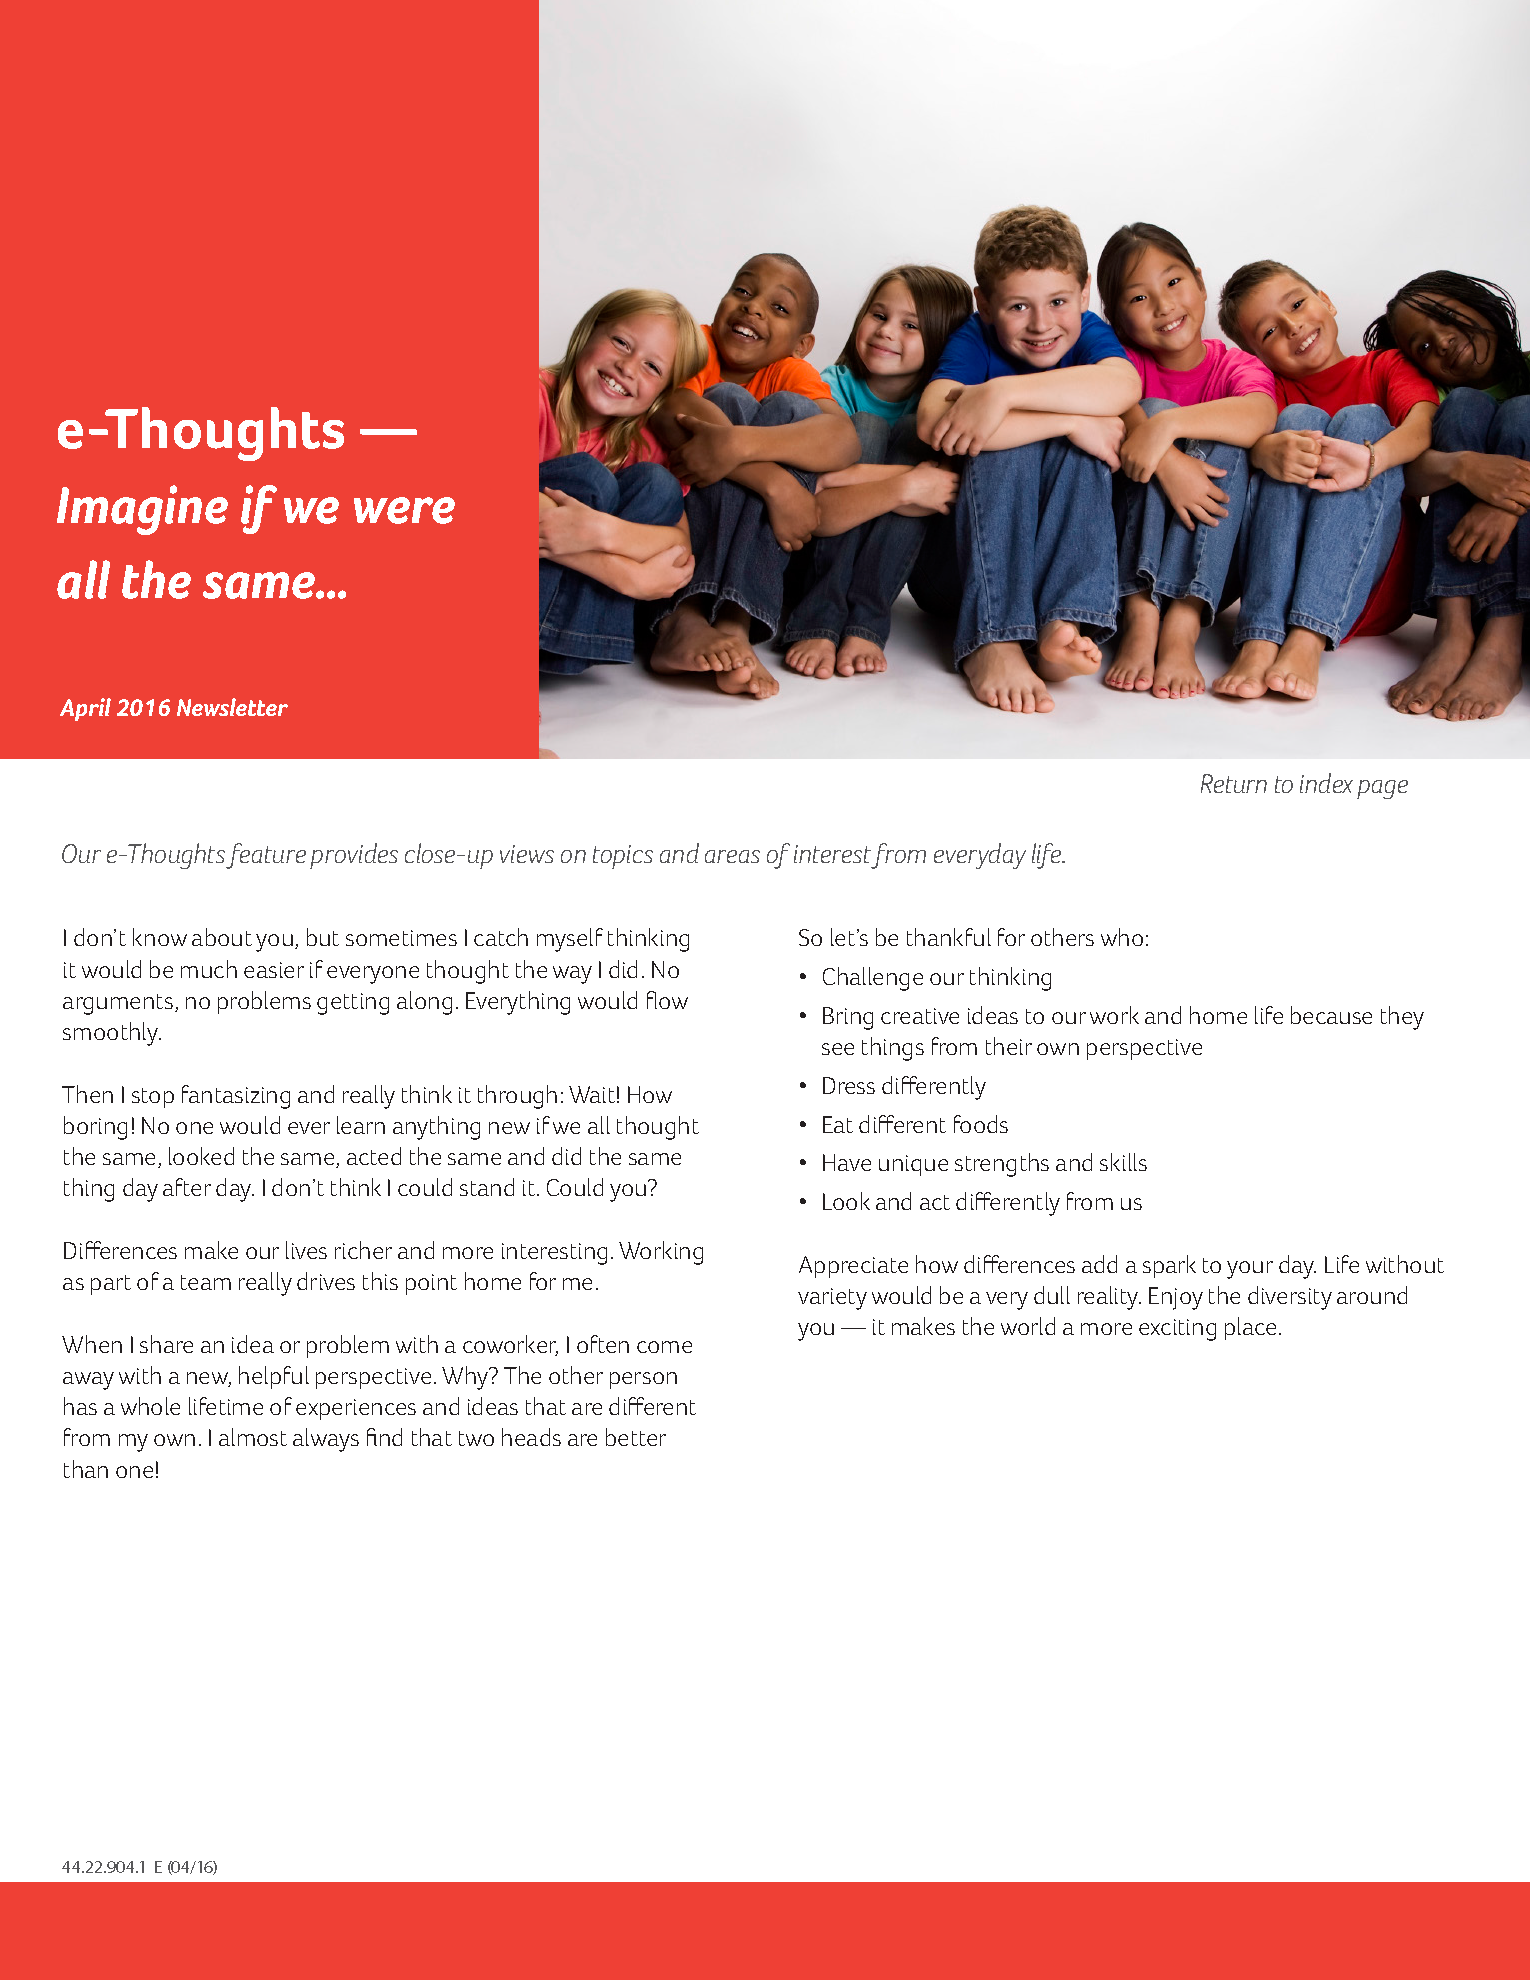 Apr16_MonthlyBulletin_e-Thoughts_Imagine if we were all the same